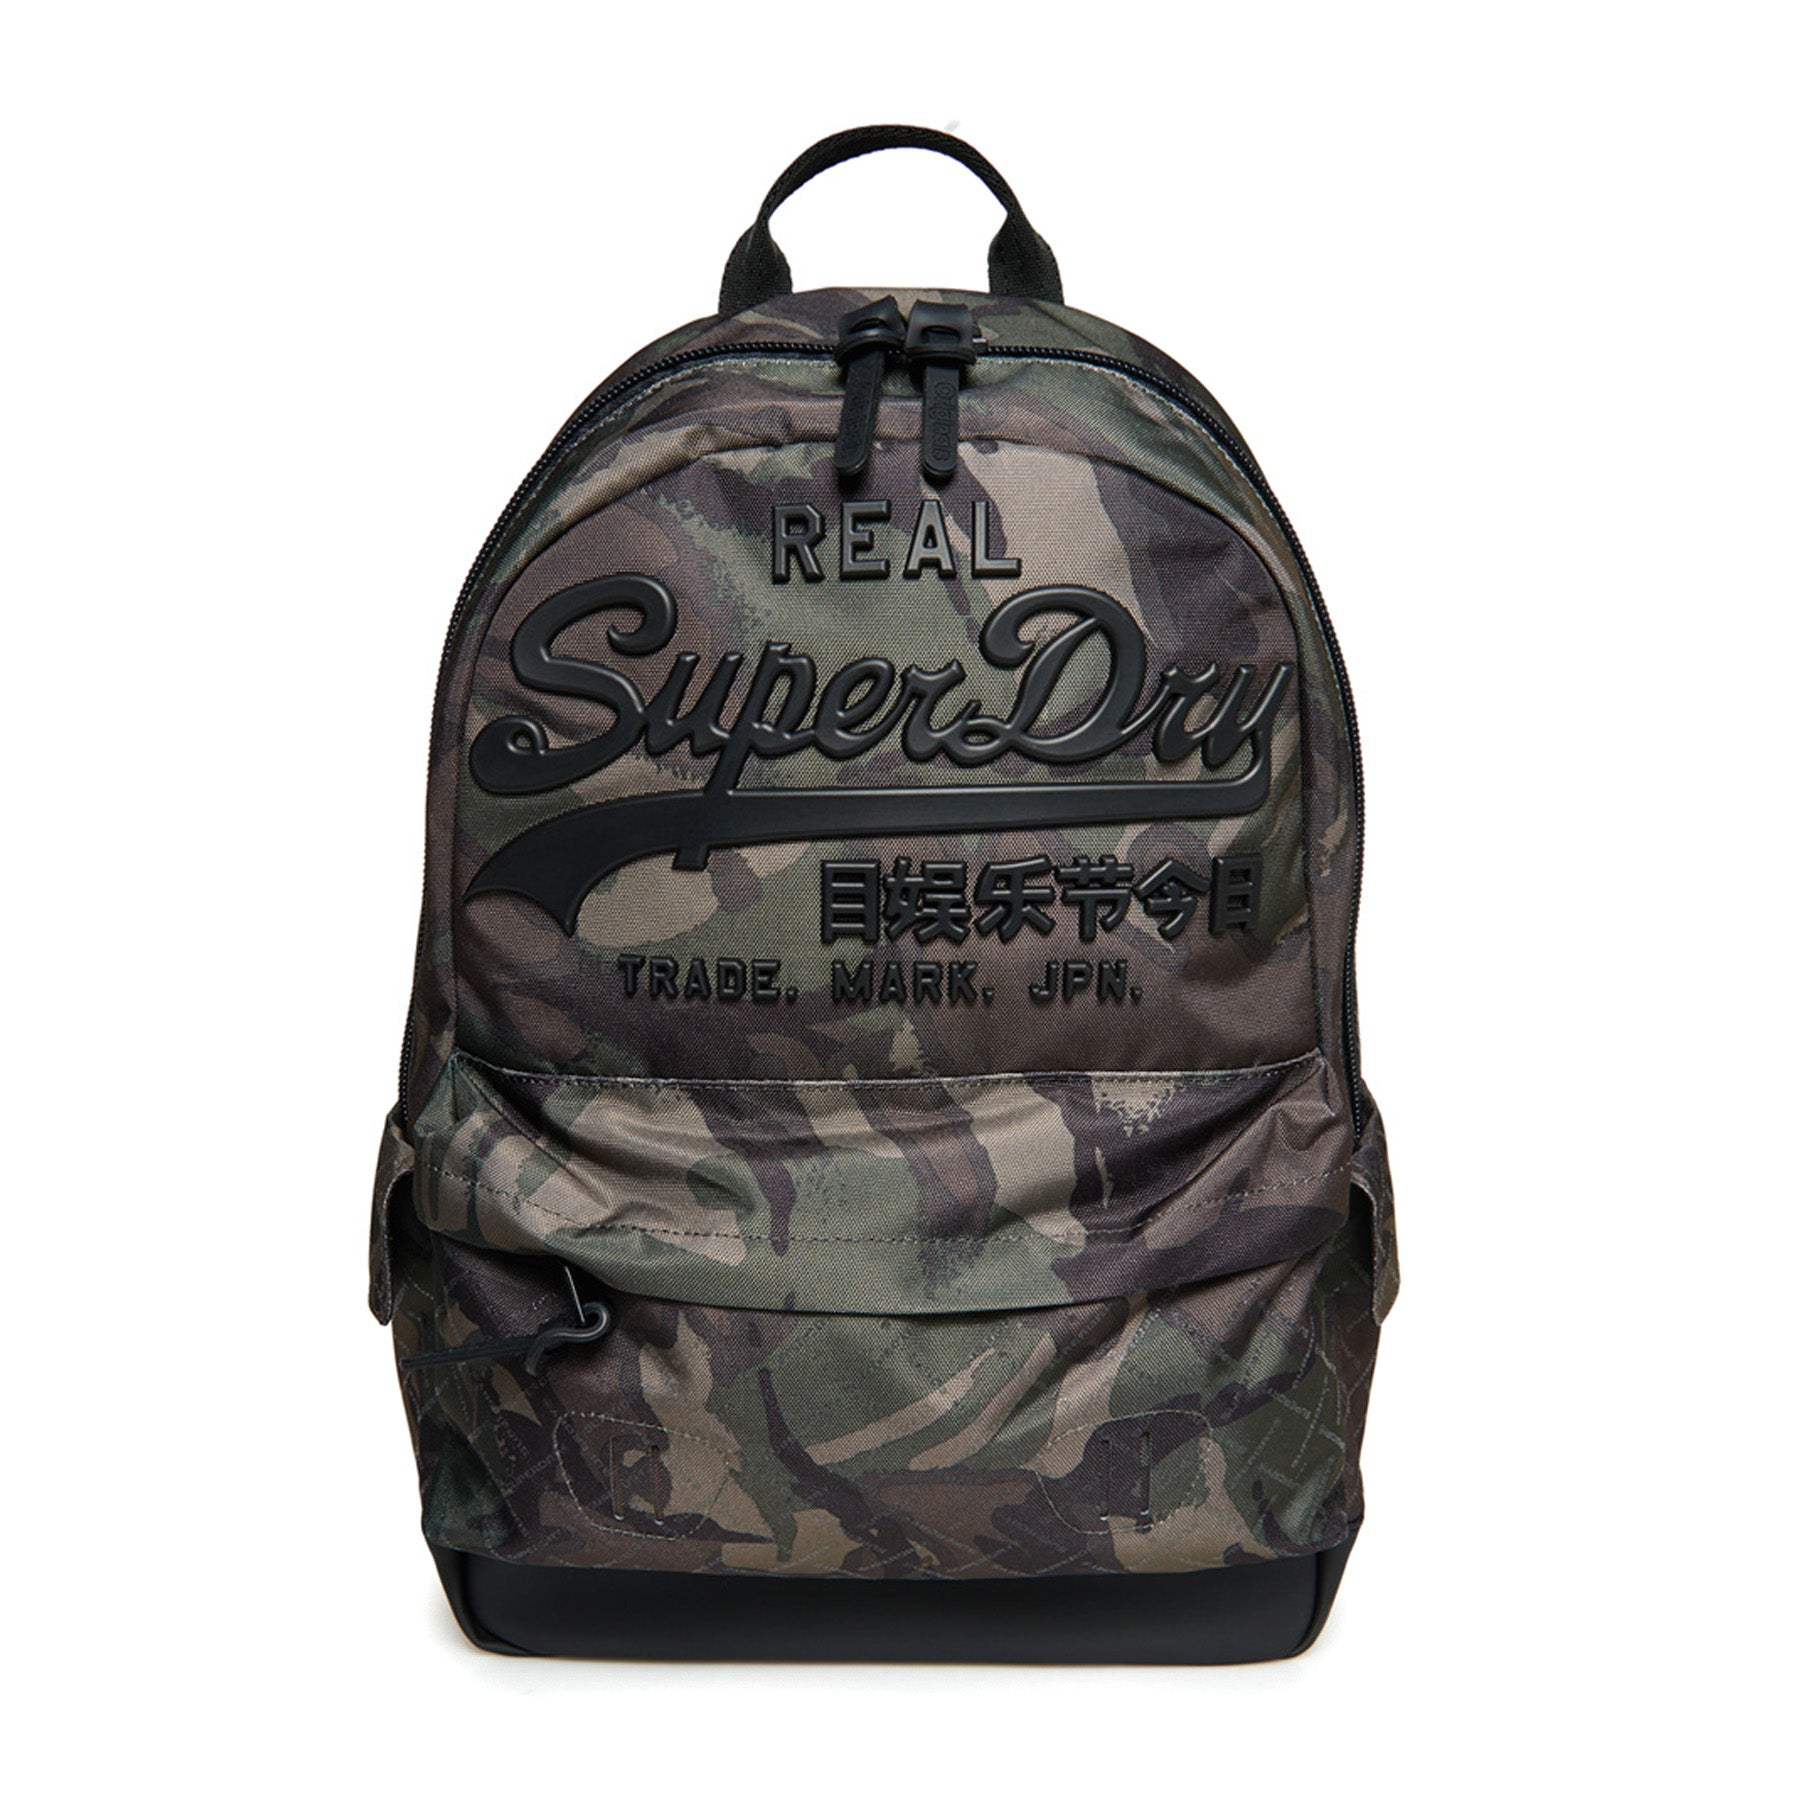 Superdry Premium Goods Backpack - Outline Army Camo